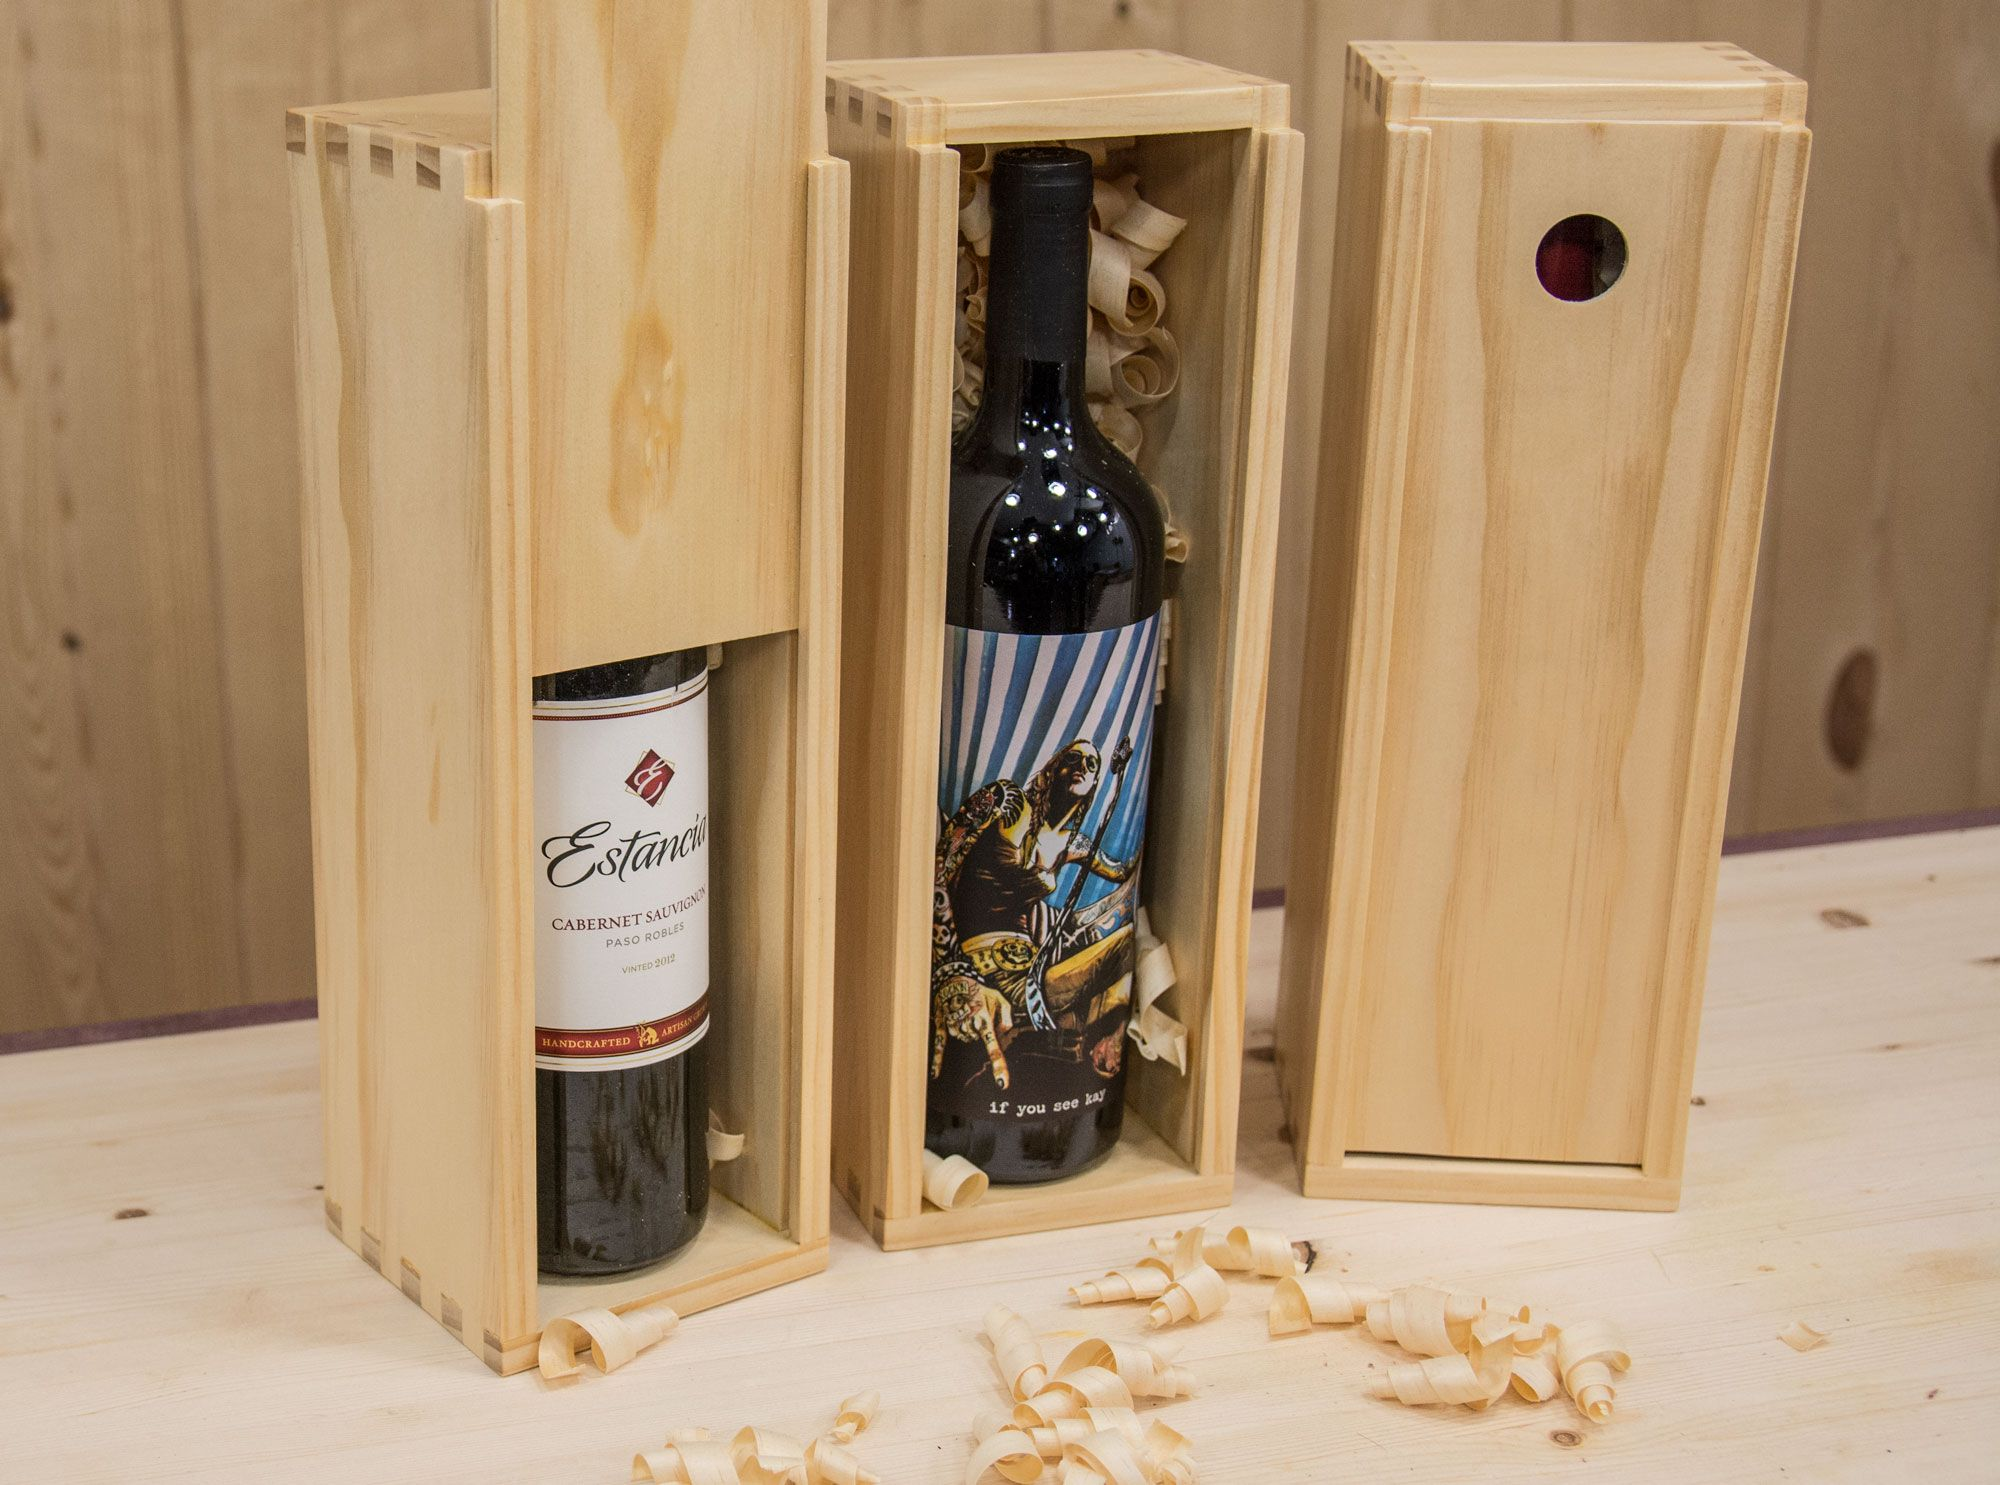 How To Make A Wine Box With Finger Joints Woodworking Projects Gifts Wooden Wine Boxes Wine Box